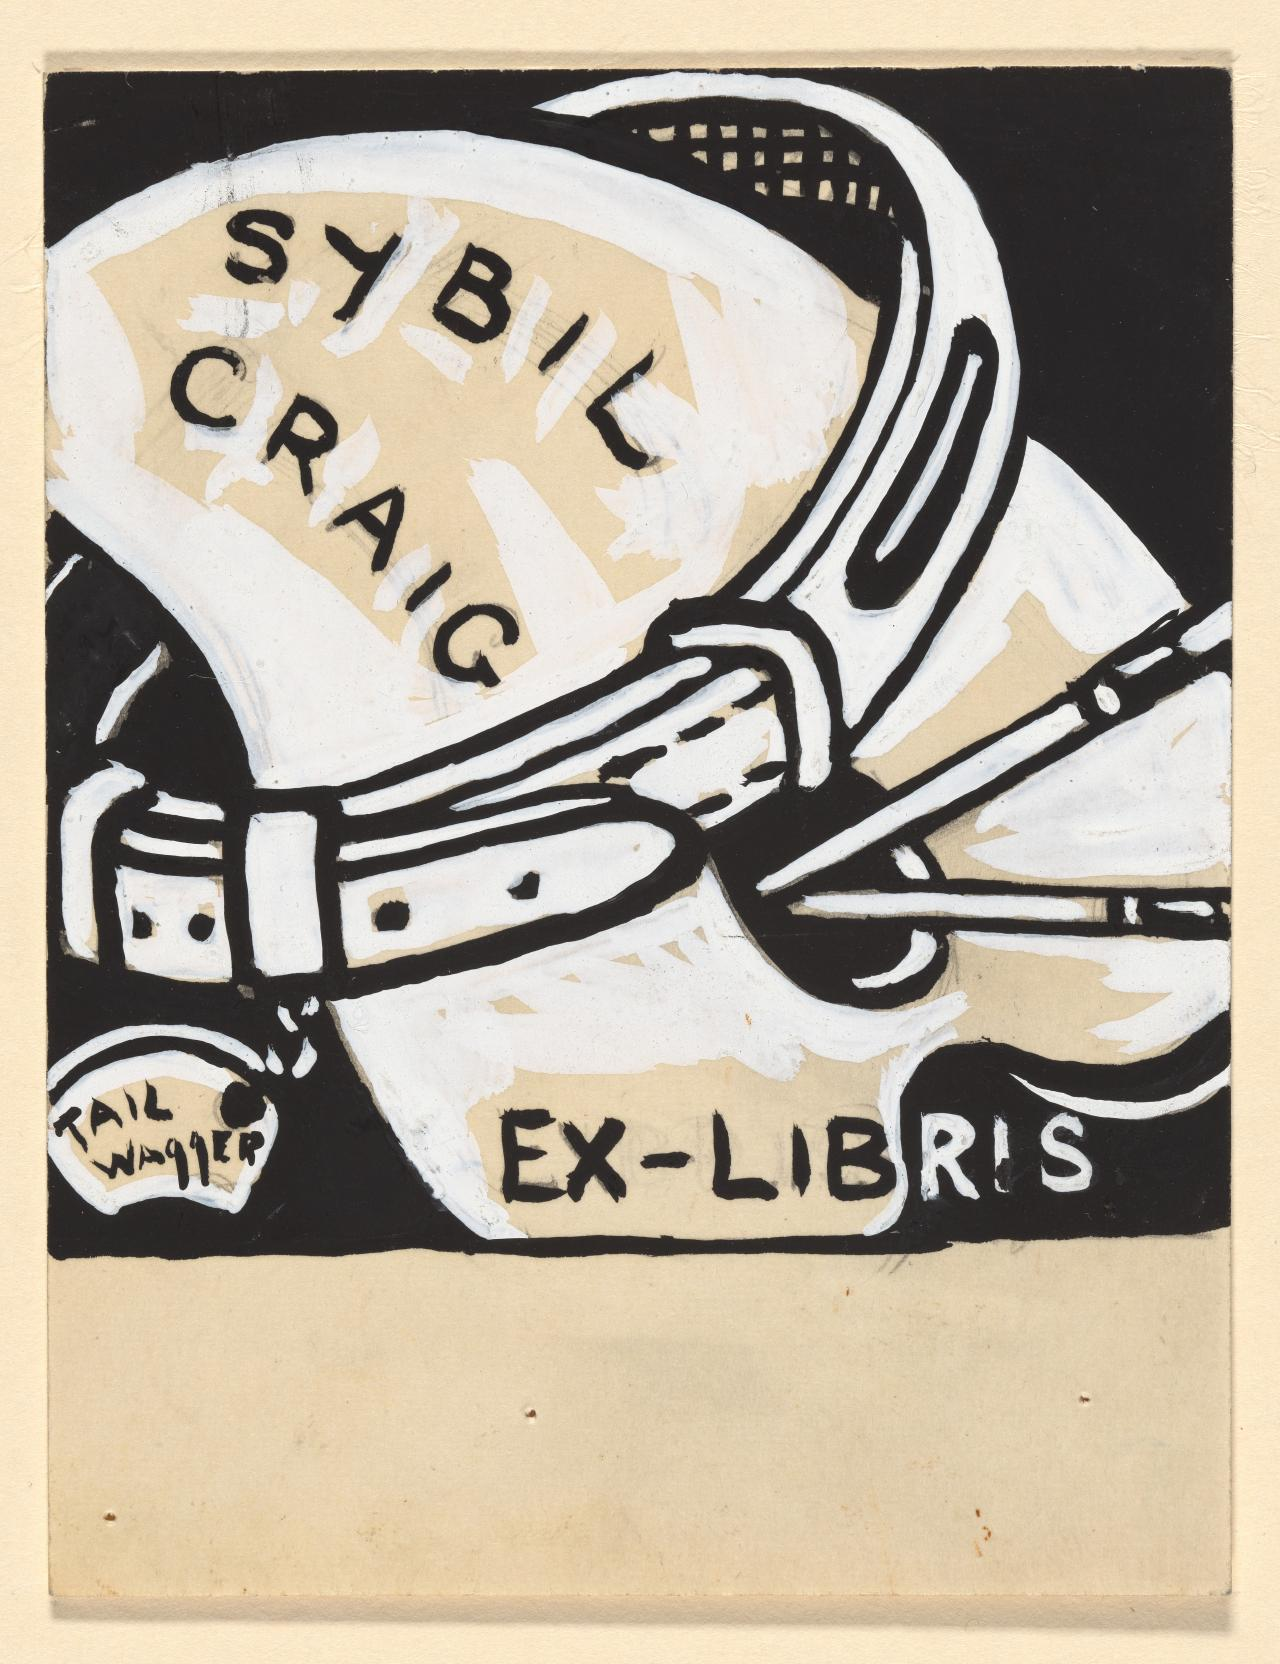 Bookplate design of Sybil Craig